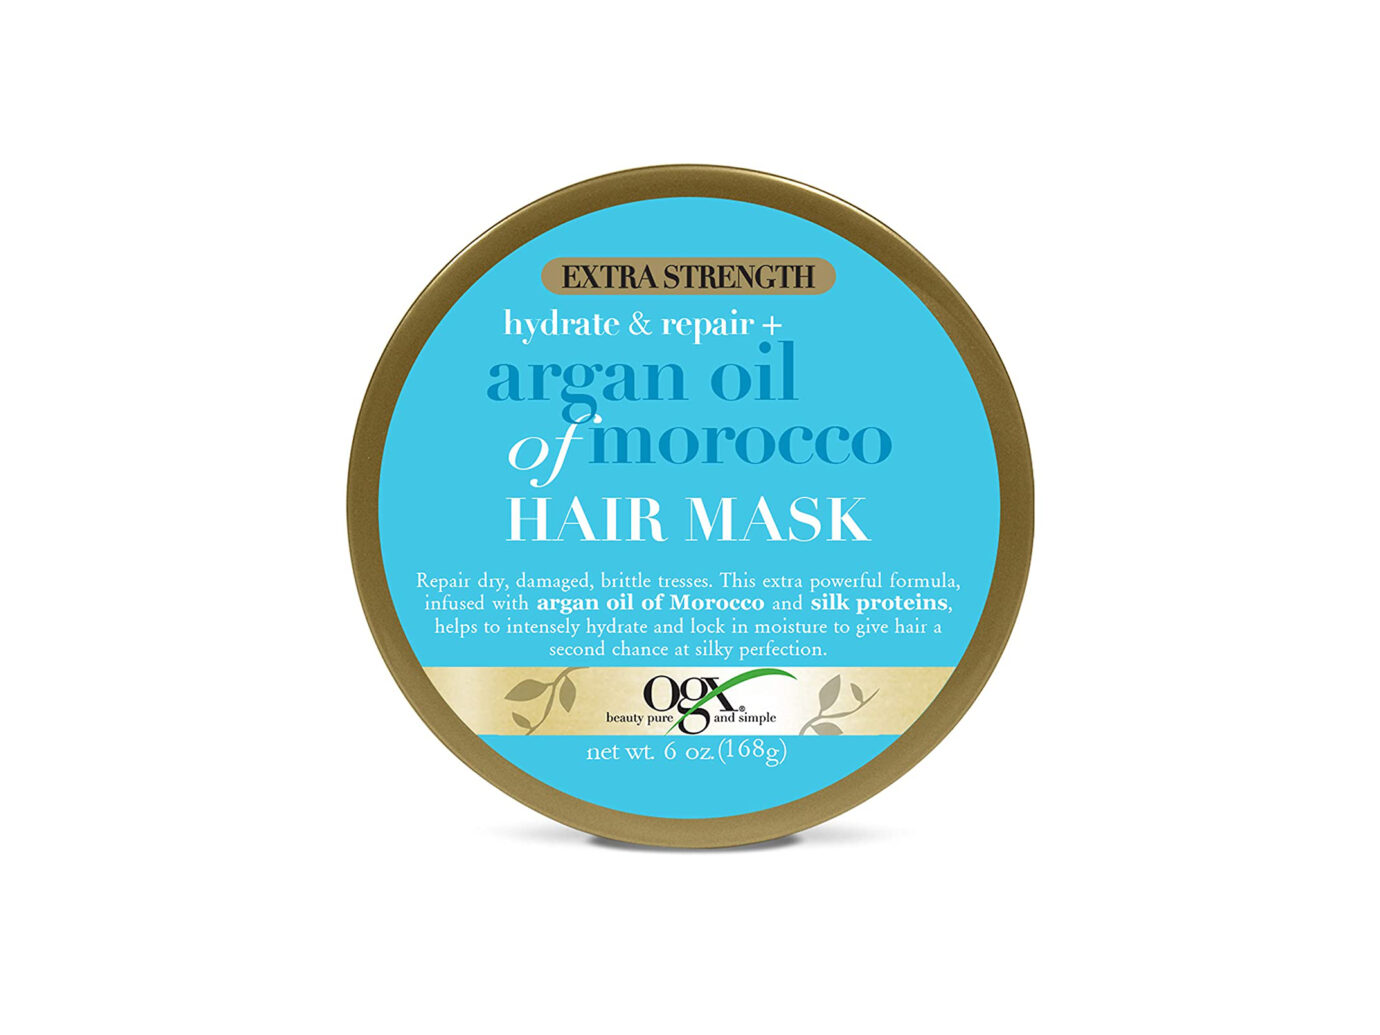 OGX Extra Strength Argan Oil Of Morocco Hair Mask